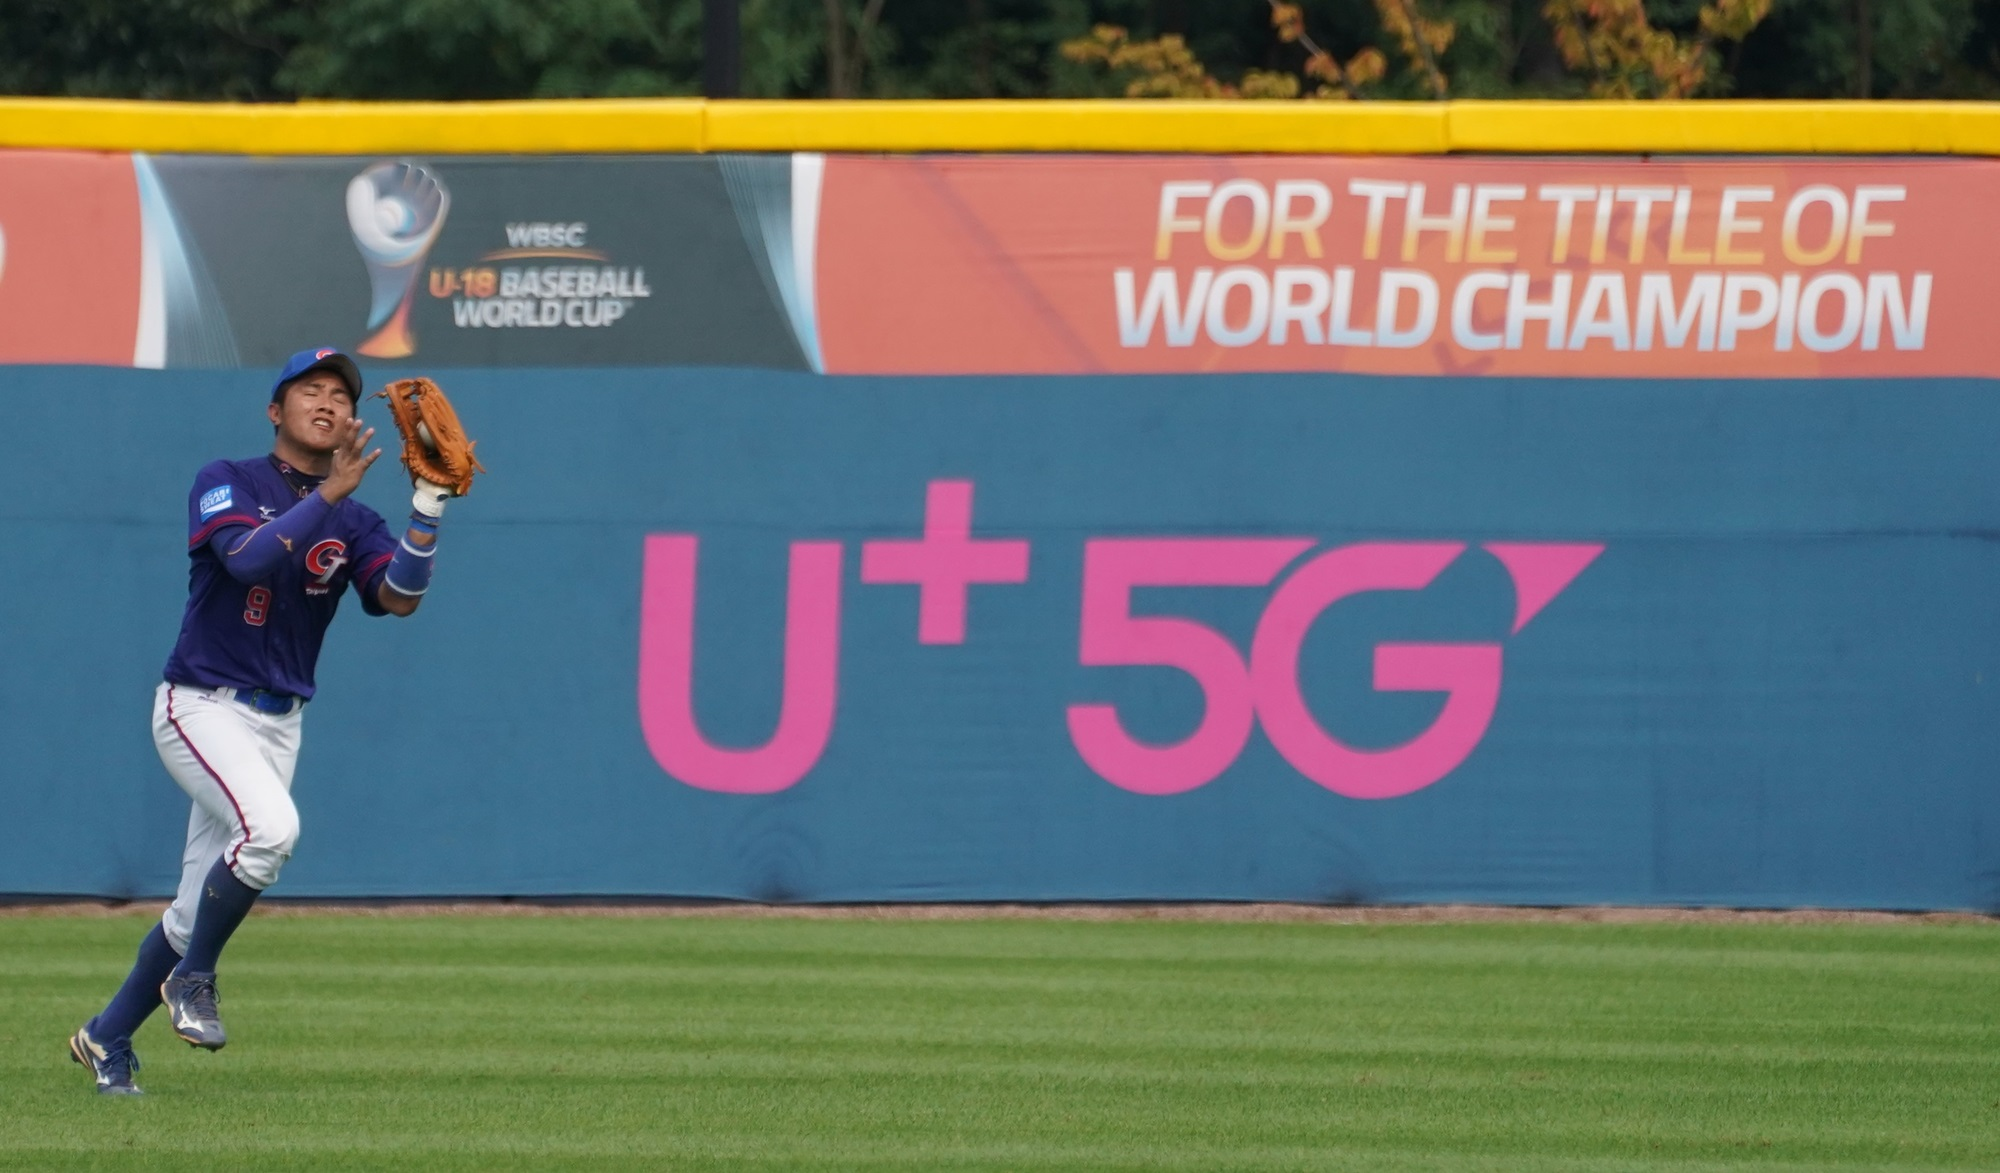 Lin Cheng Hua in the outfield